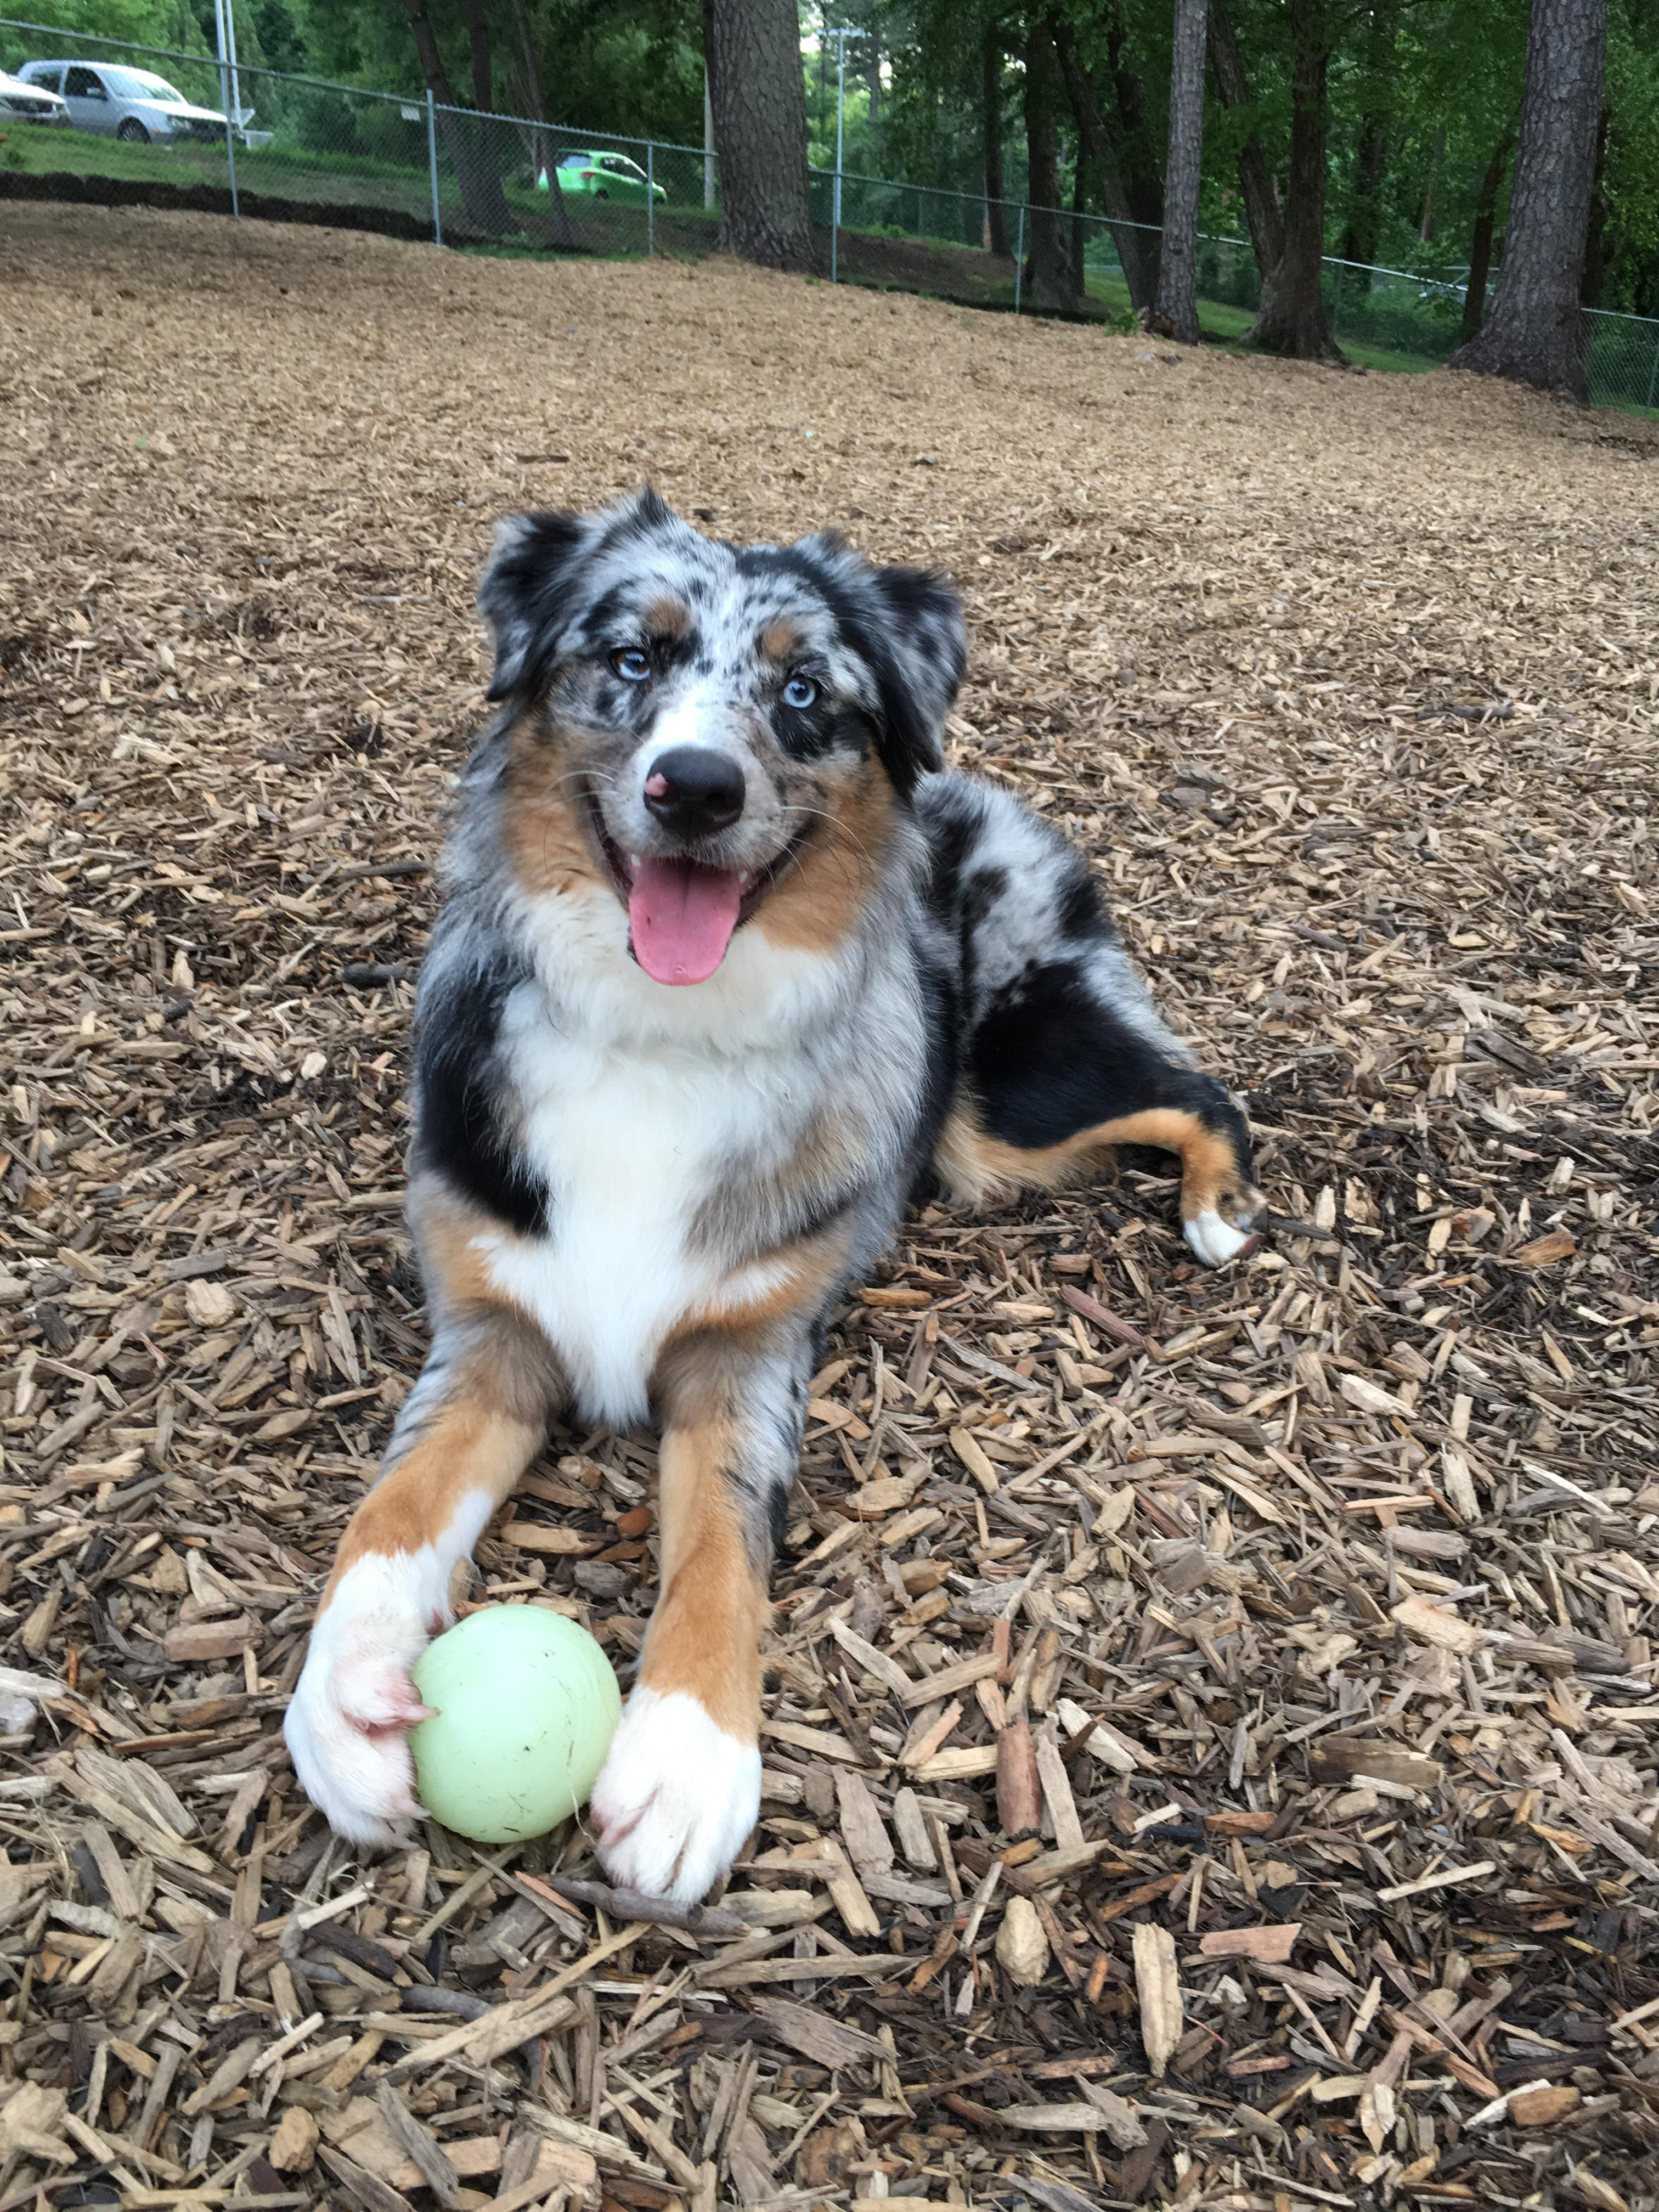 Natural Friendly Reer To Not Shave Your Wiggle Butt Summer Friendly Reer To Not Shave Your Wiggle Butt Summer Do Mini Australian Shepherds Shed A Lot Does Australian Shepherds Shed bark post Do Australian Shepherds Shed